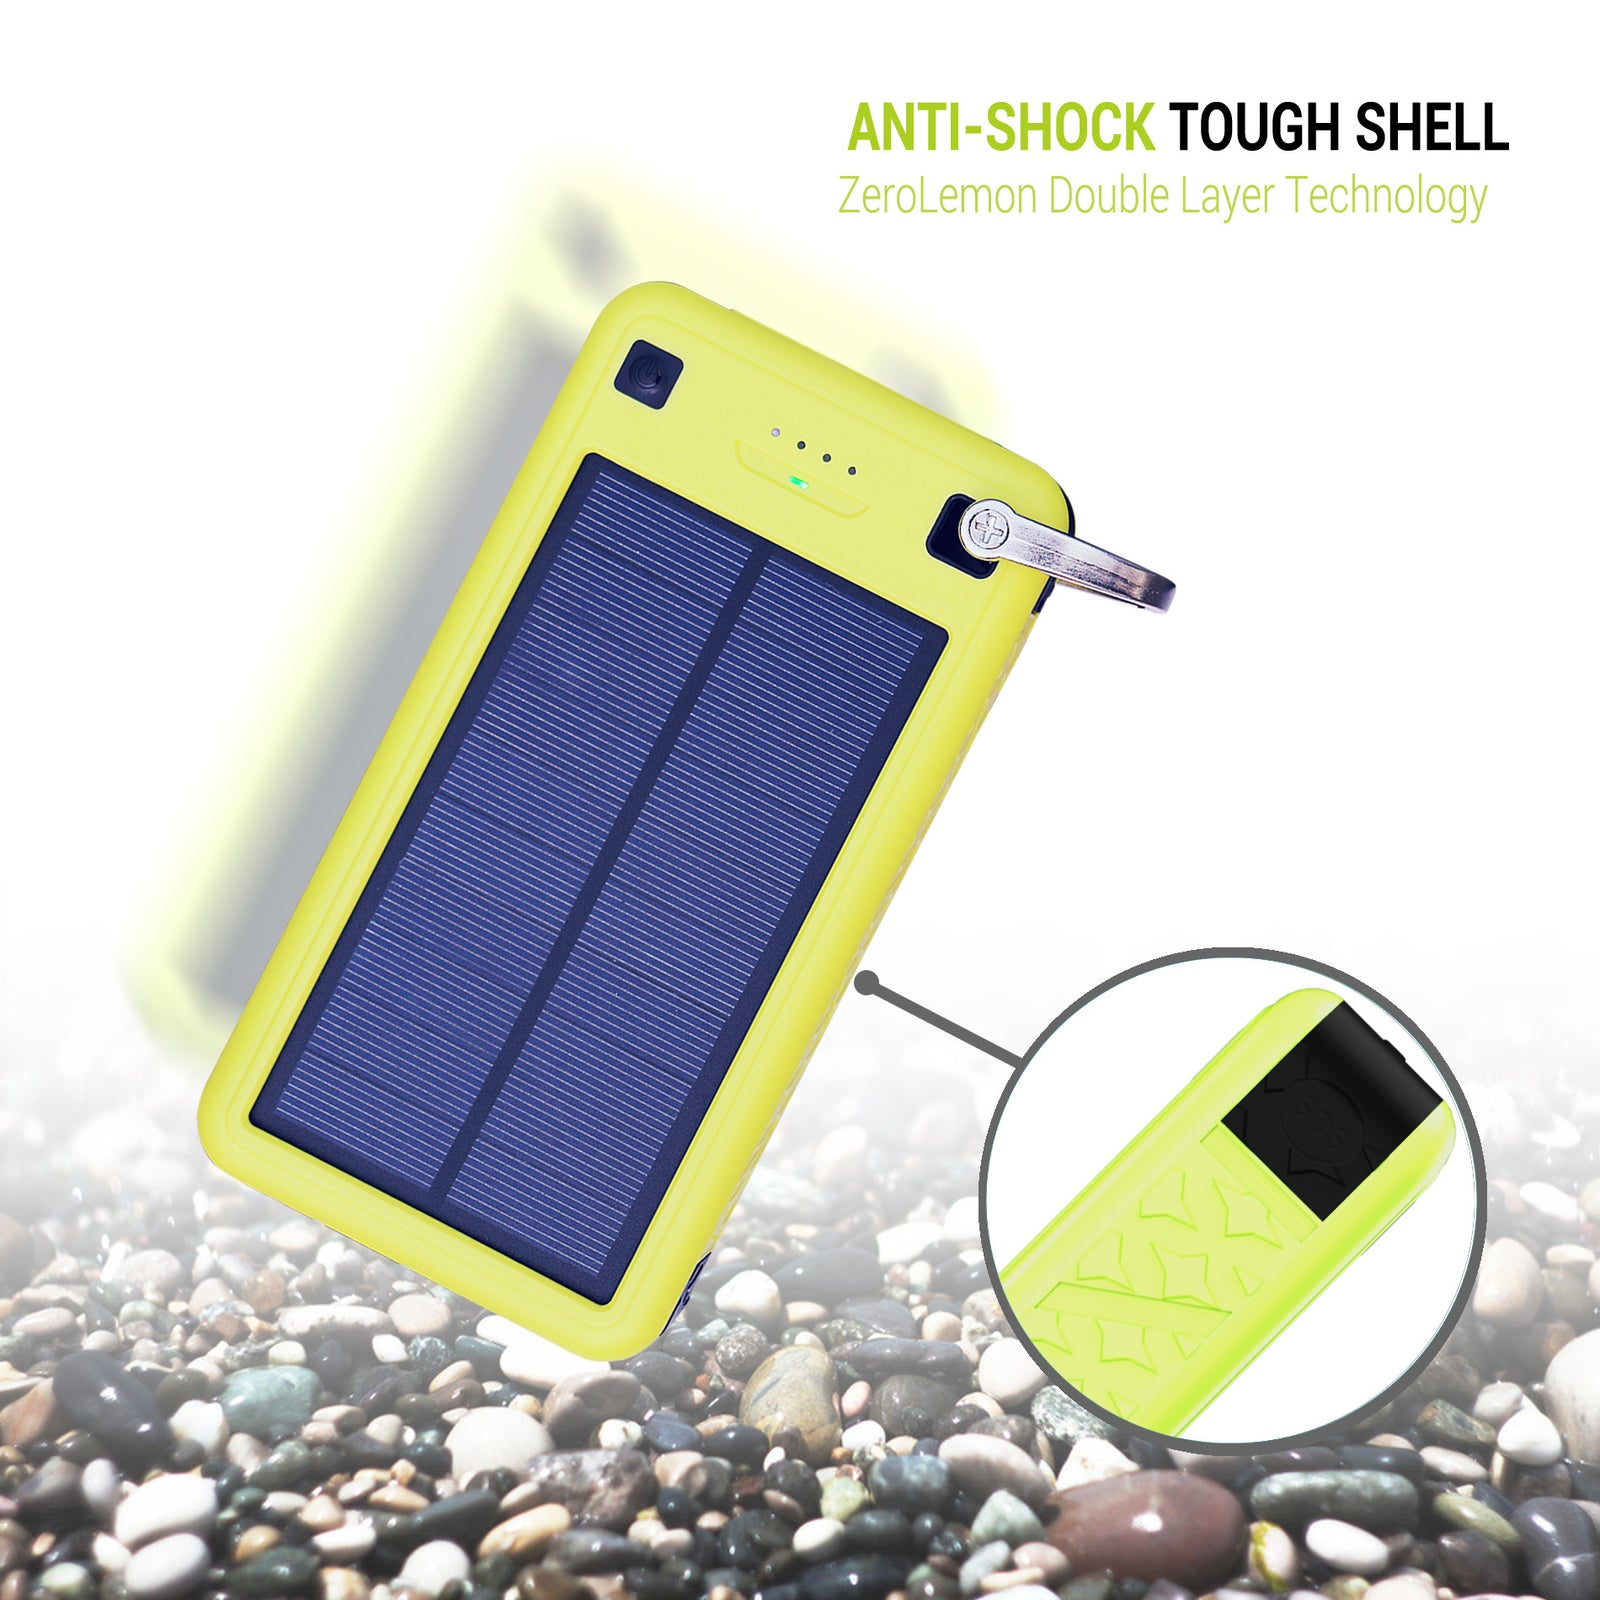 SolarJuice Portable Charger 26800mAh [Shipping to US Only]